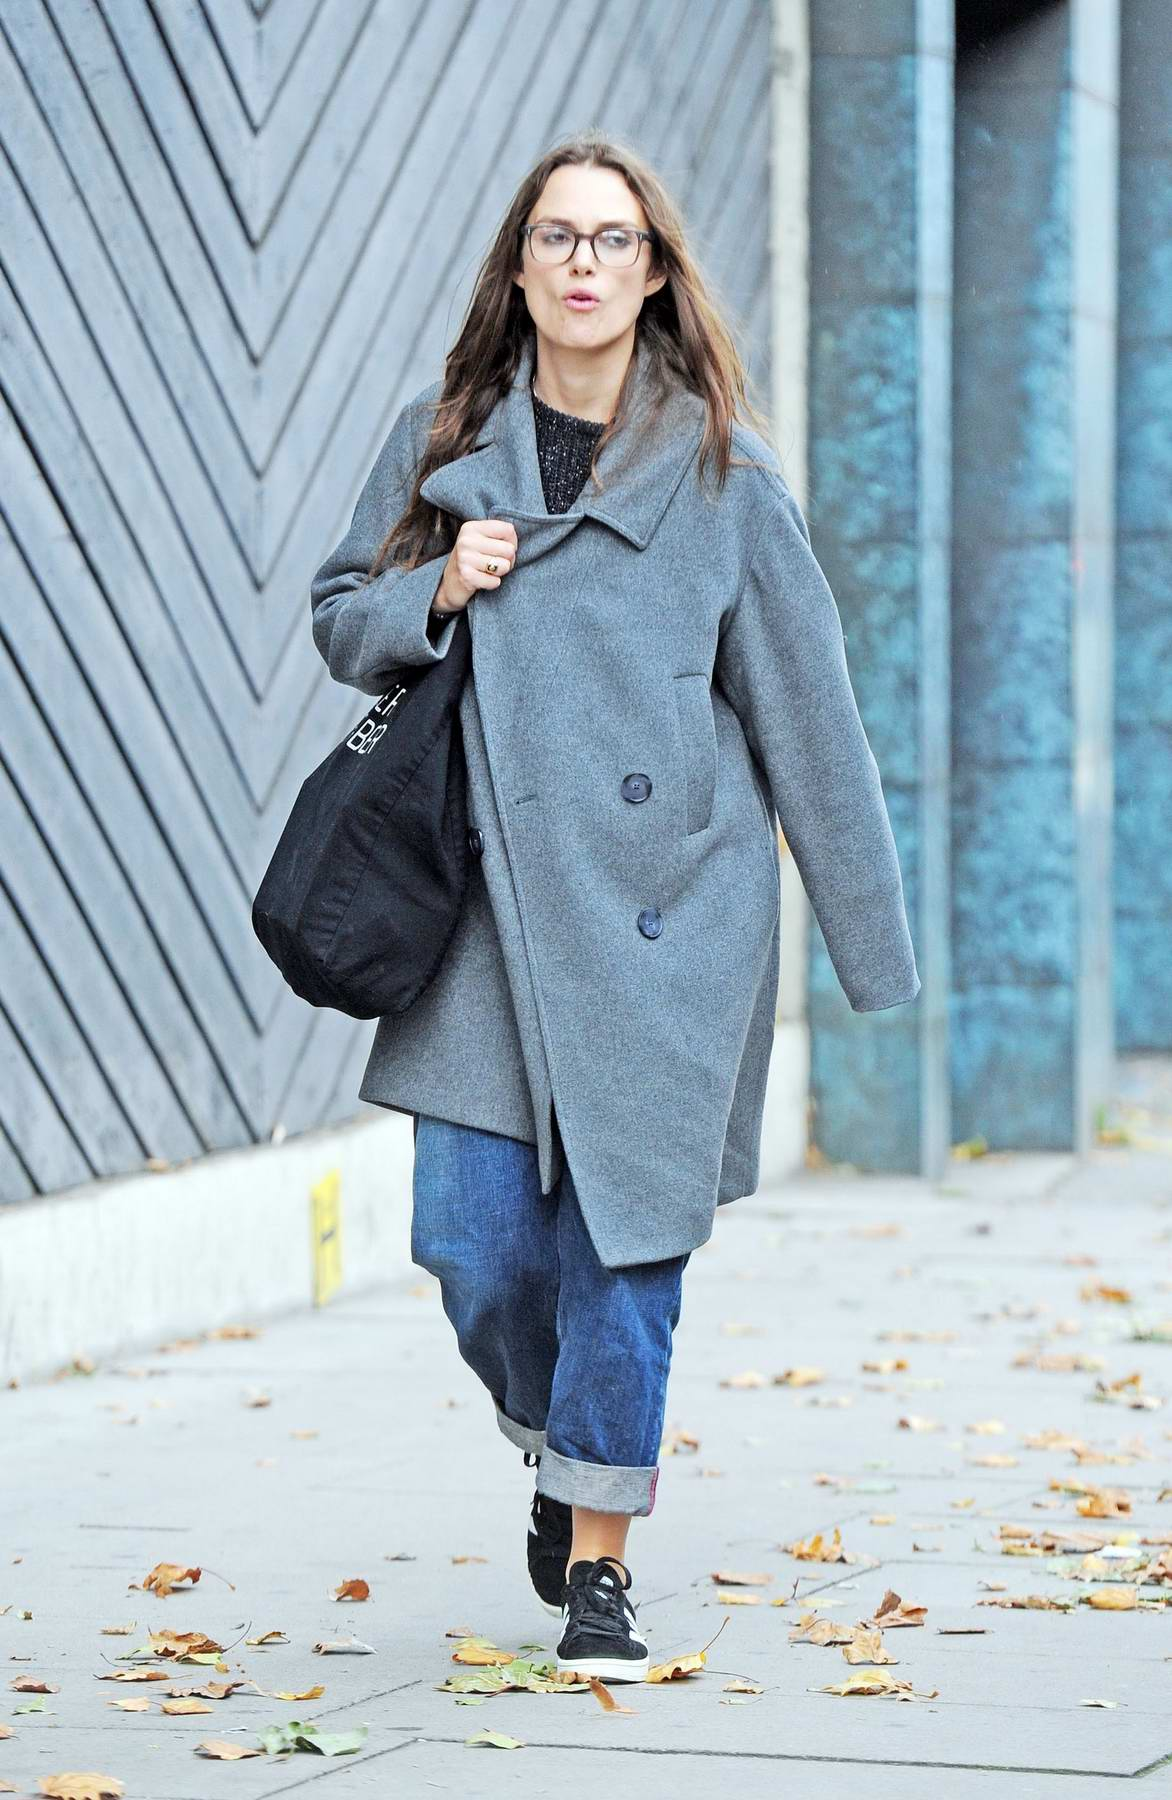 Keira Knightley dressed in a large grey coat and spectacles is spotted running a few errands in London